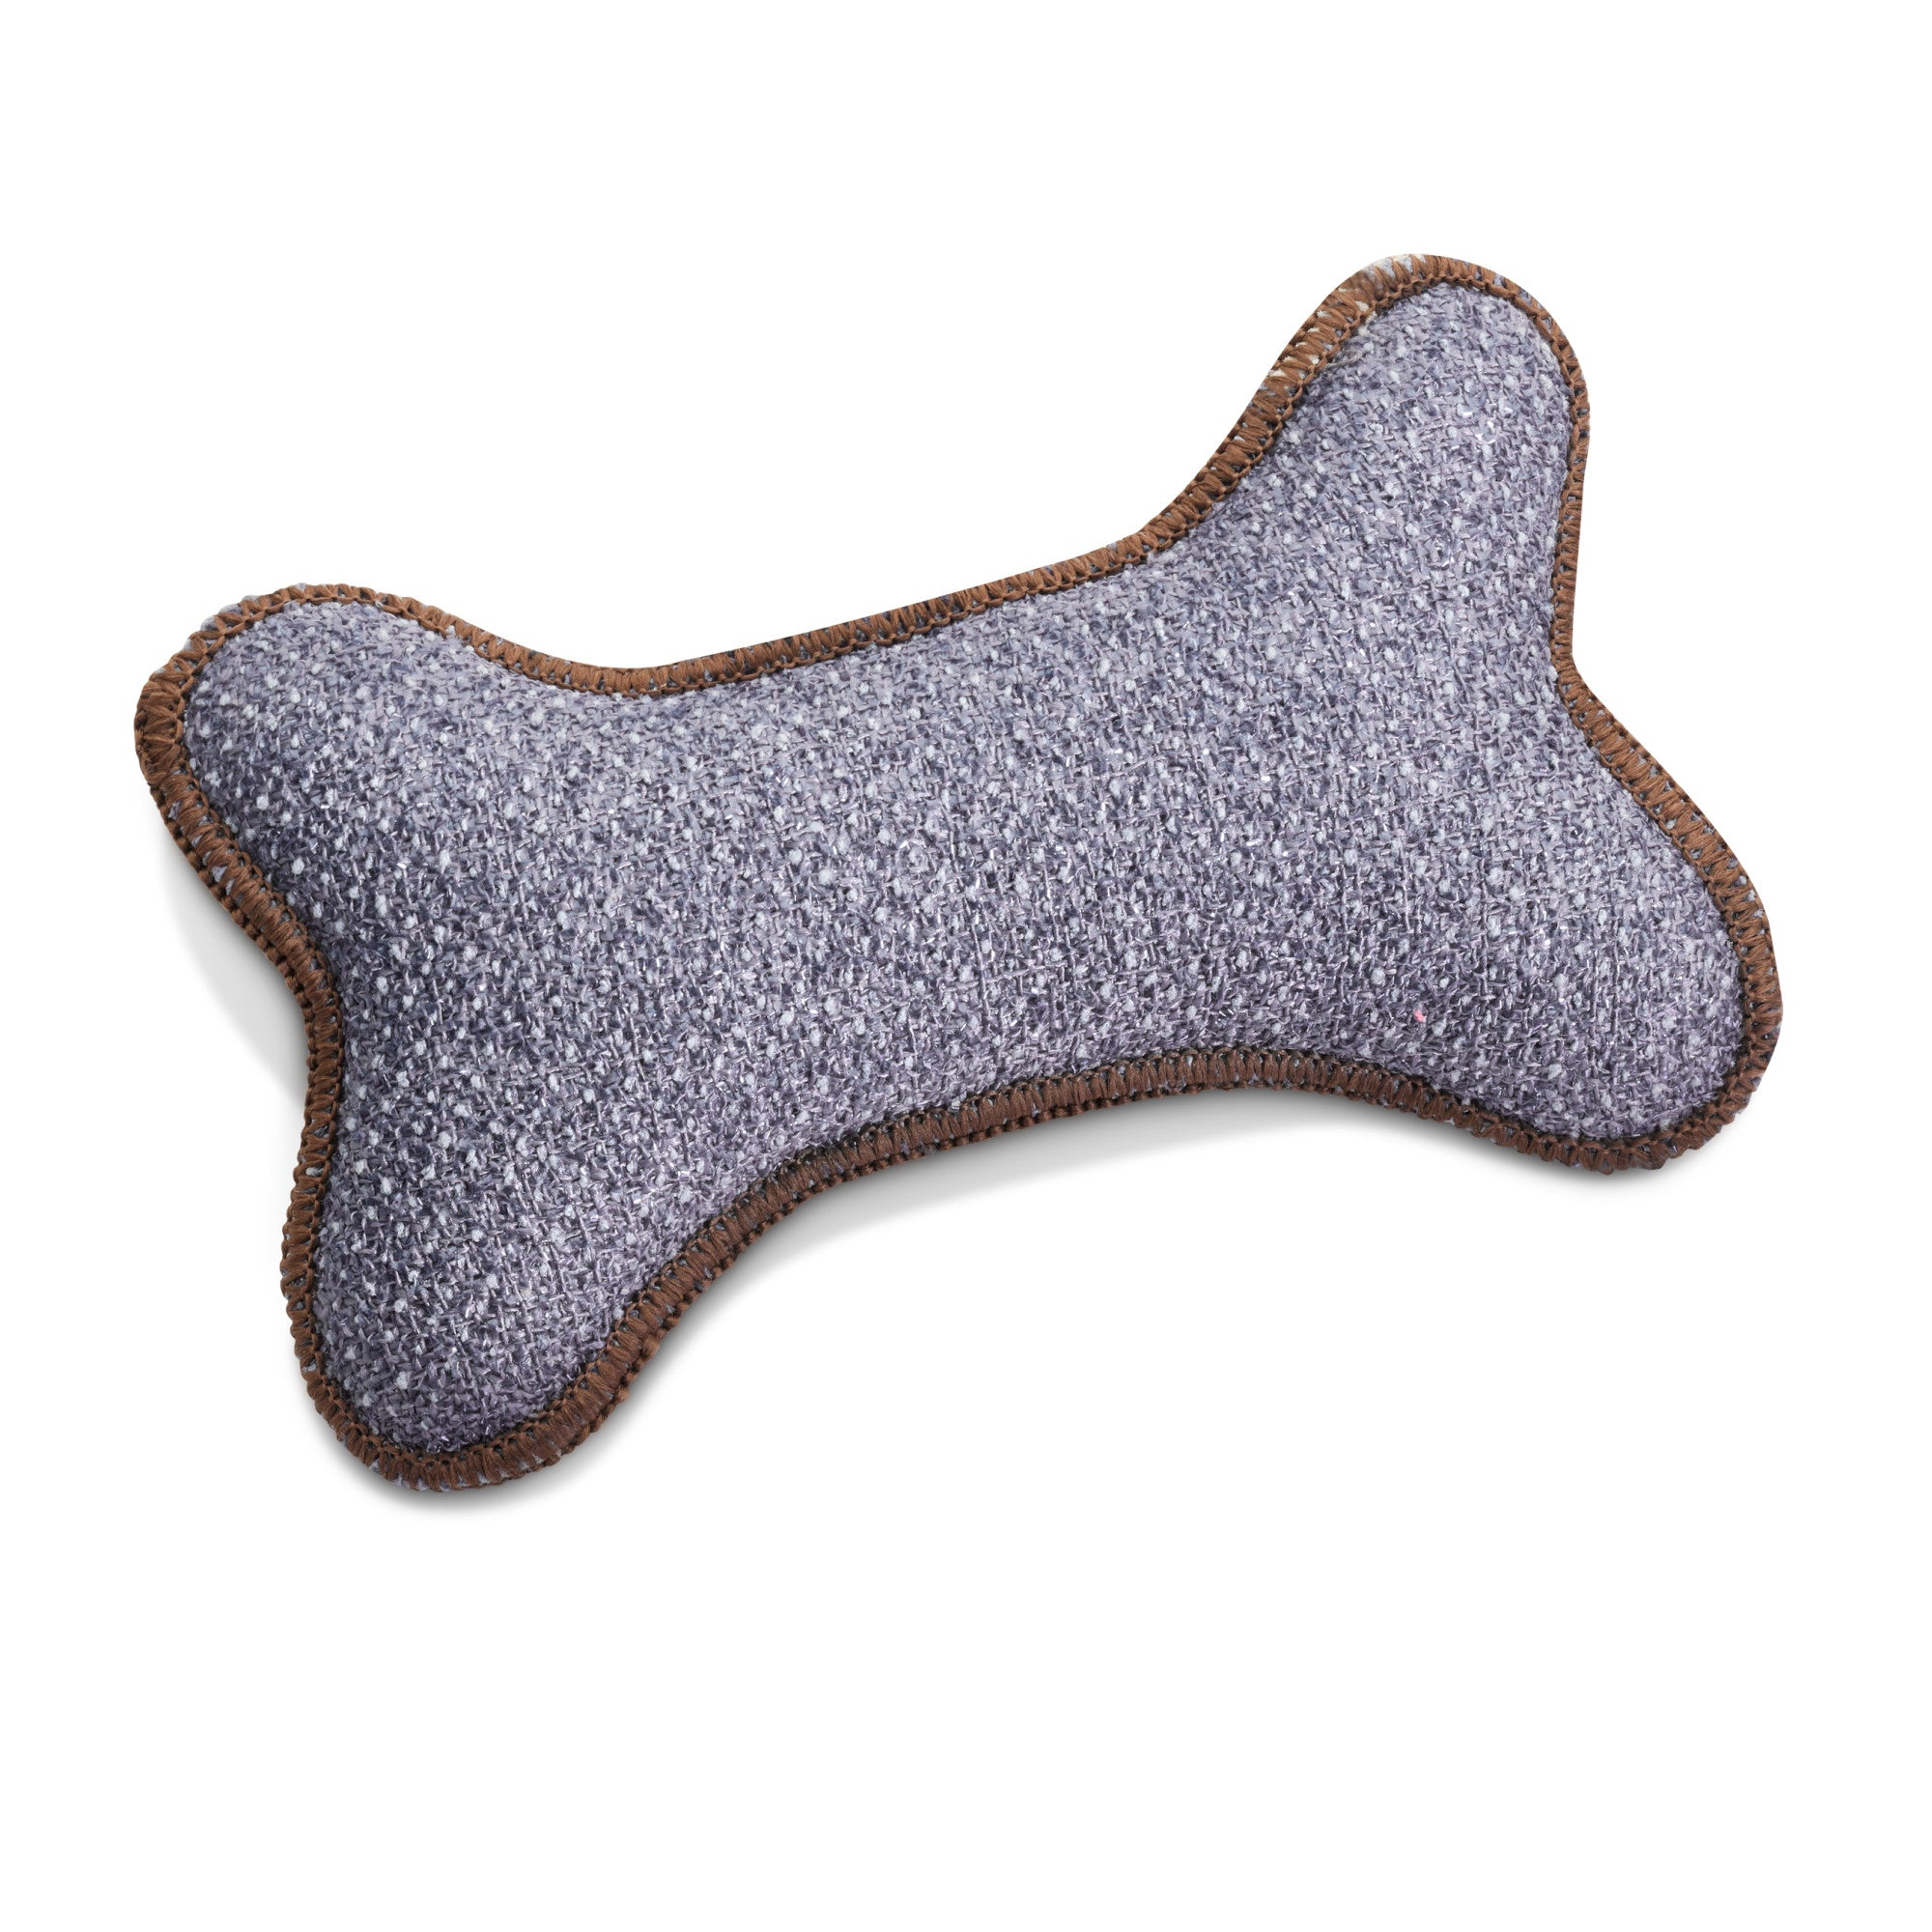 658b9bb29f0a Pet Bowl Scrubber - Bone-Shaped Scrubber Keeps Pet Bowl Cleaning Separate  From People Bowl